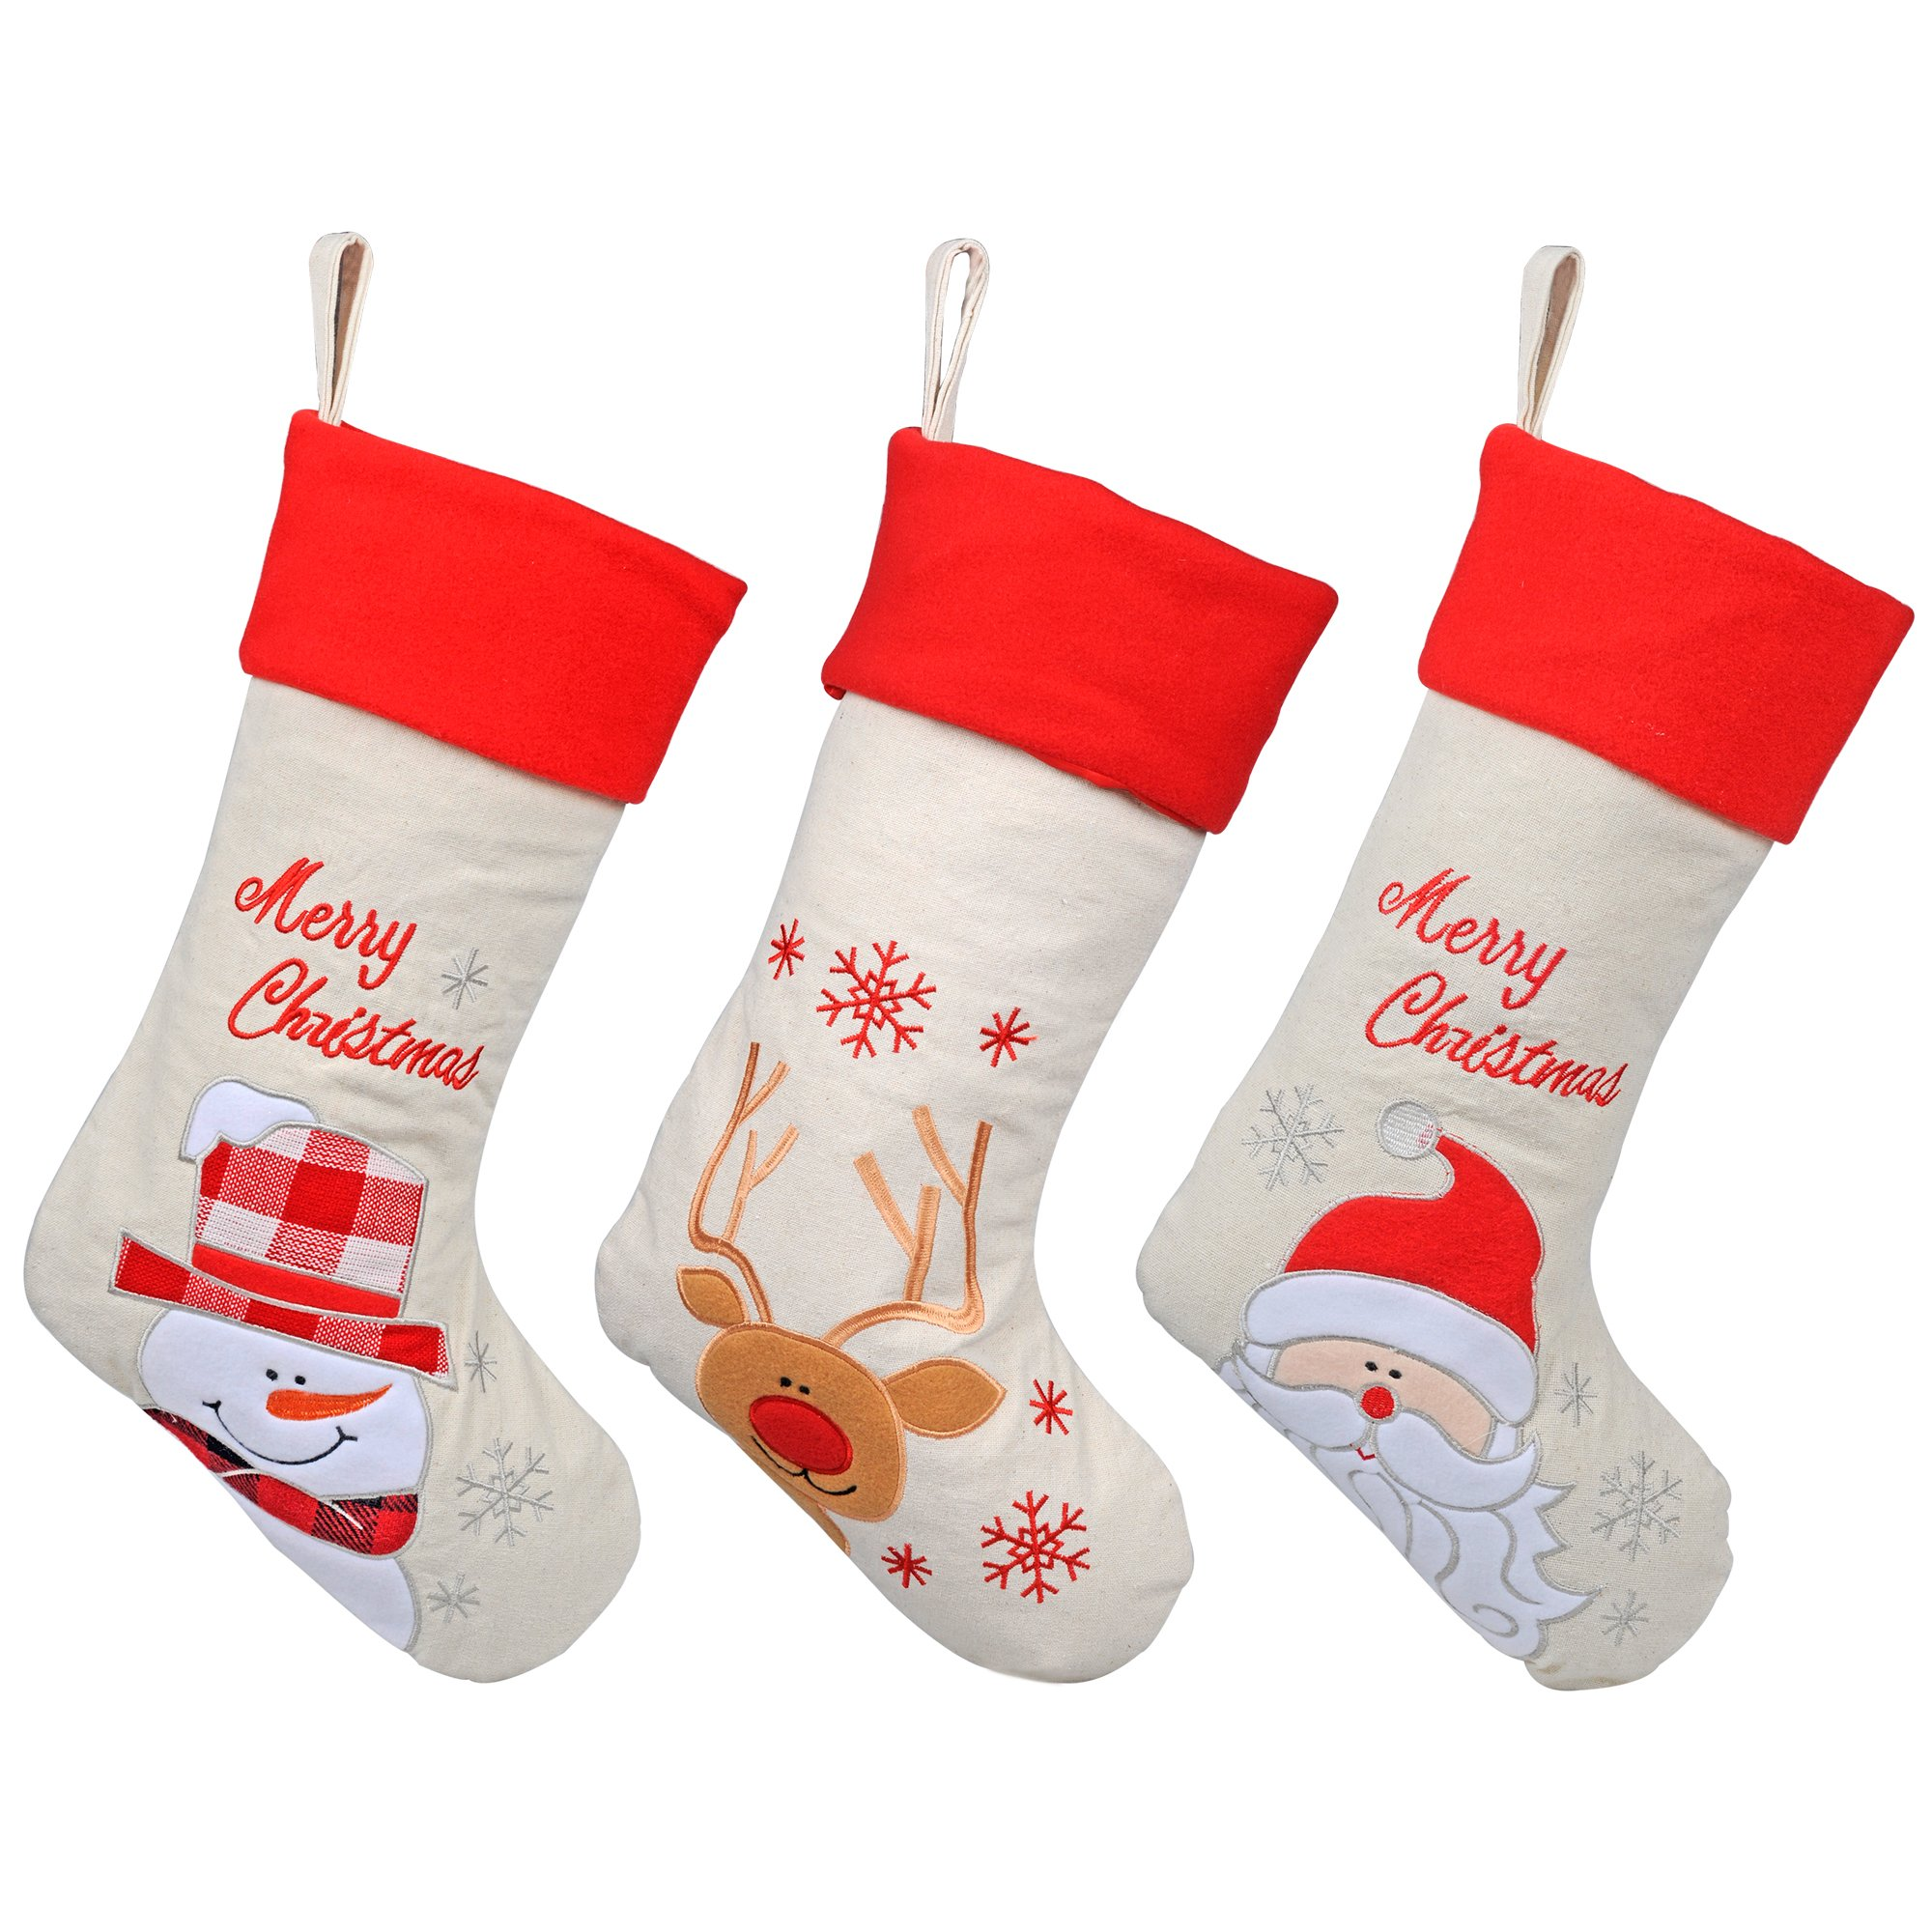 KI Store Christmas Stockings Burlap Set of 3 for Kids Goody Gift Bags Ornaments 17'' Classic Xmas Snowman Jolly Santa Red-Nosed Reindeer Decorations Decor